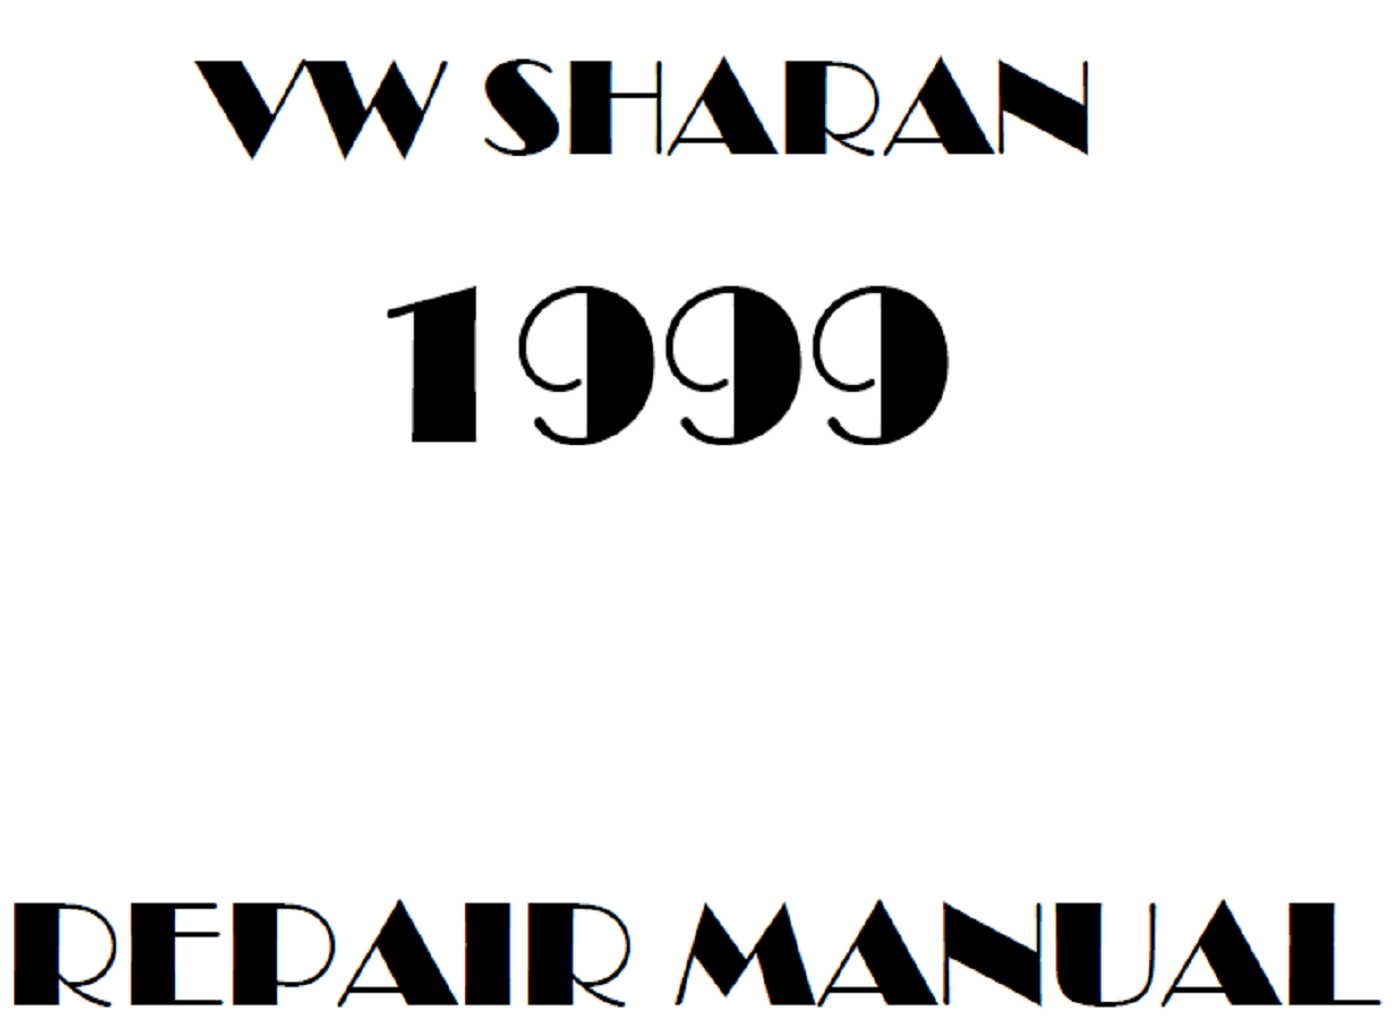 1999 Volkswagen Sharan repair manual